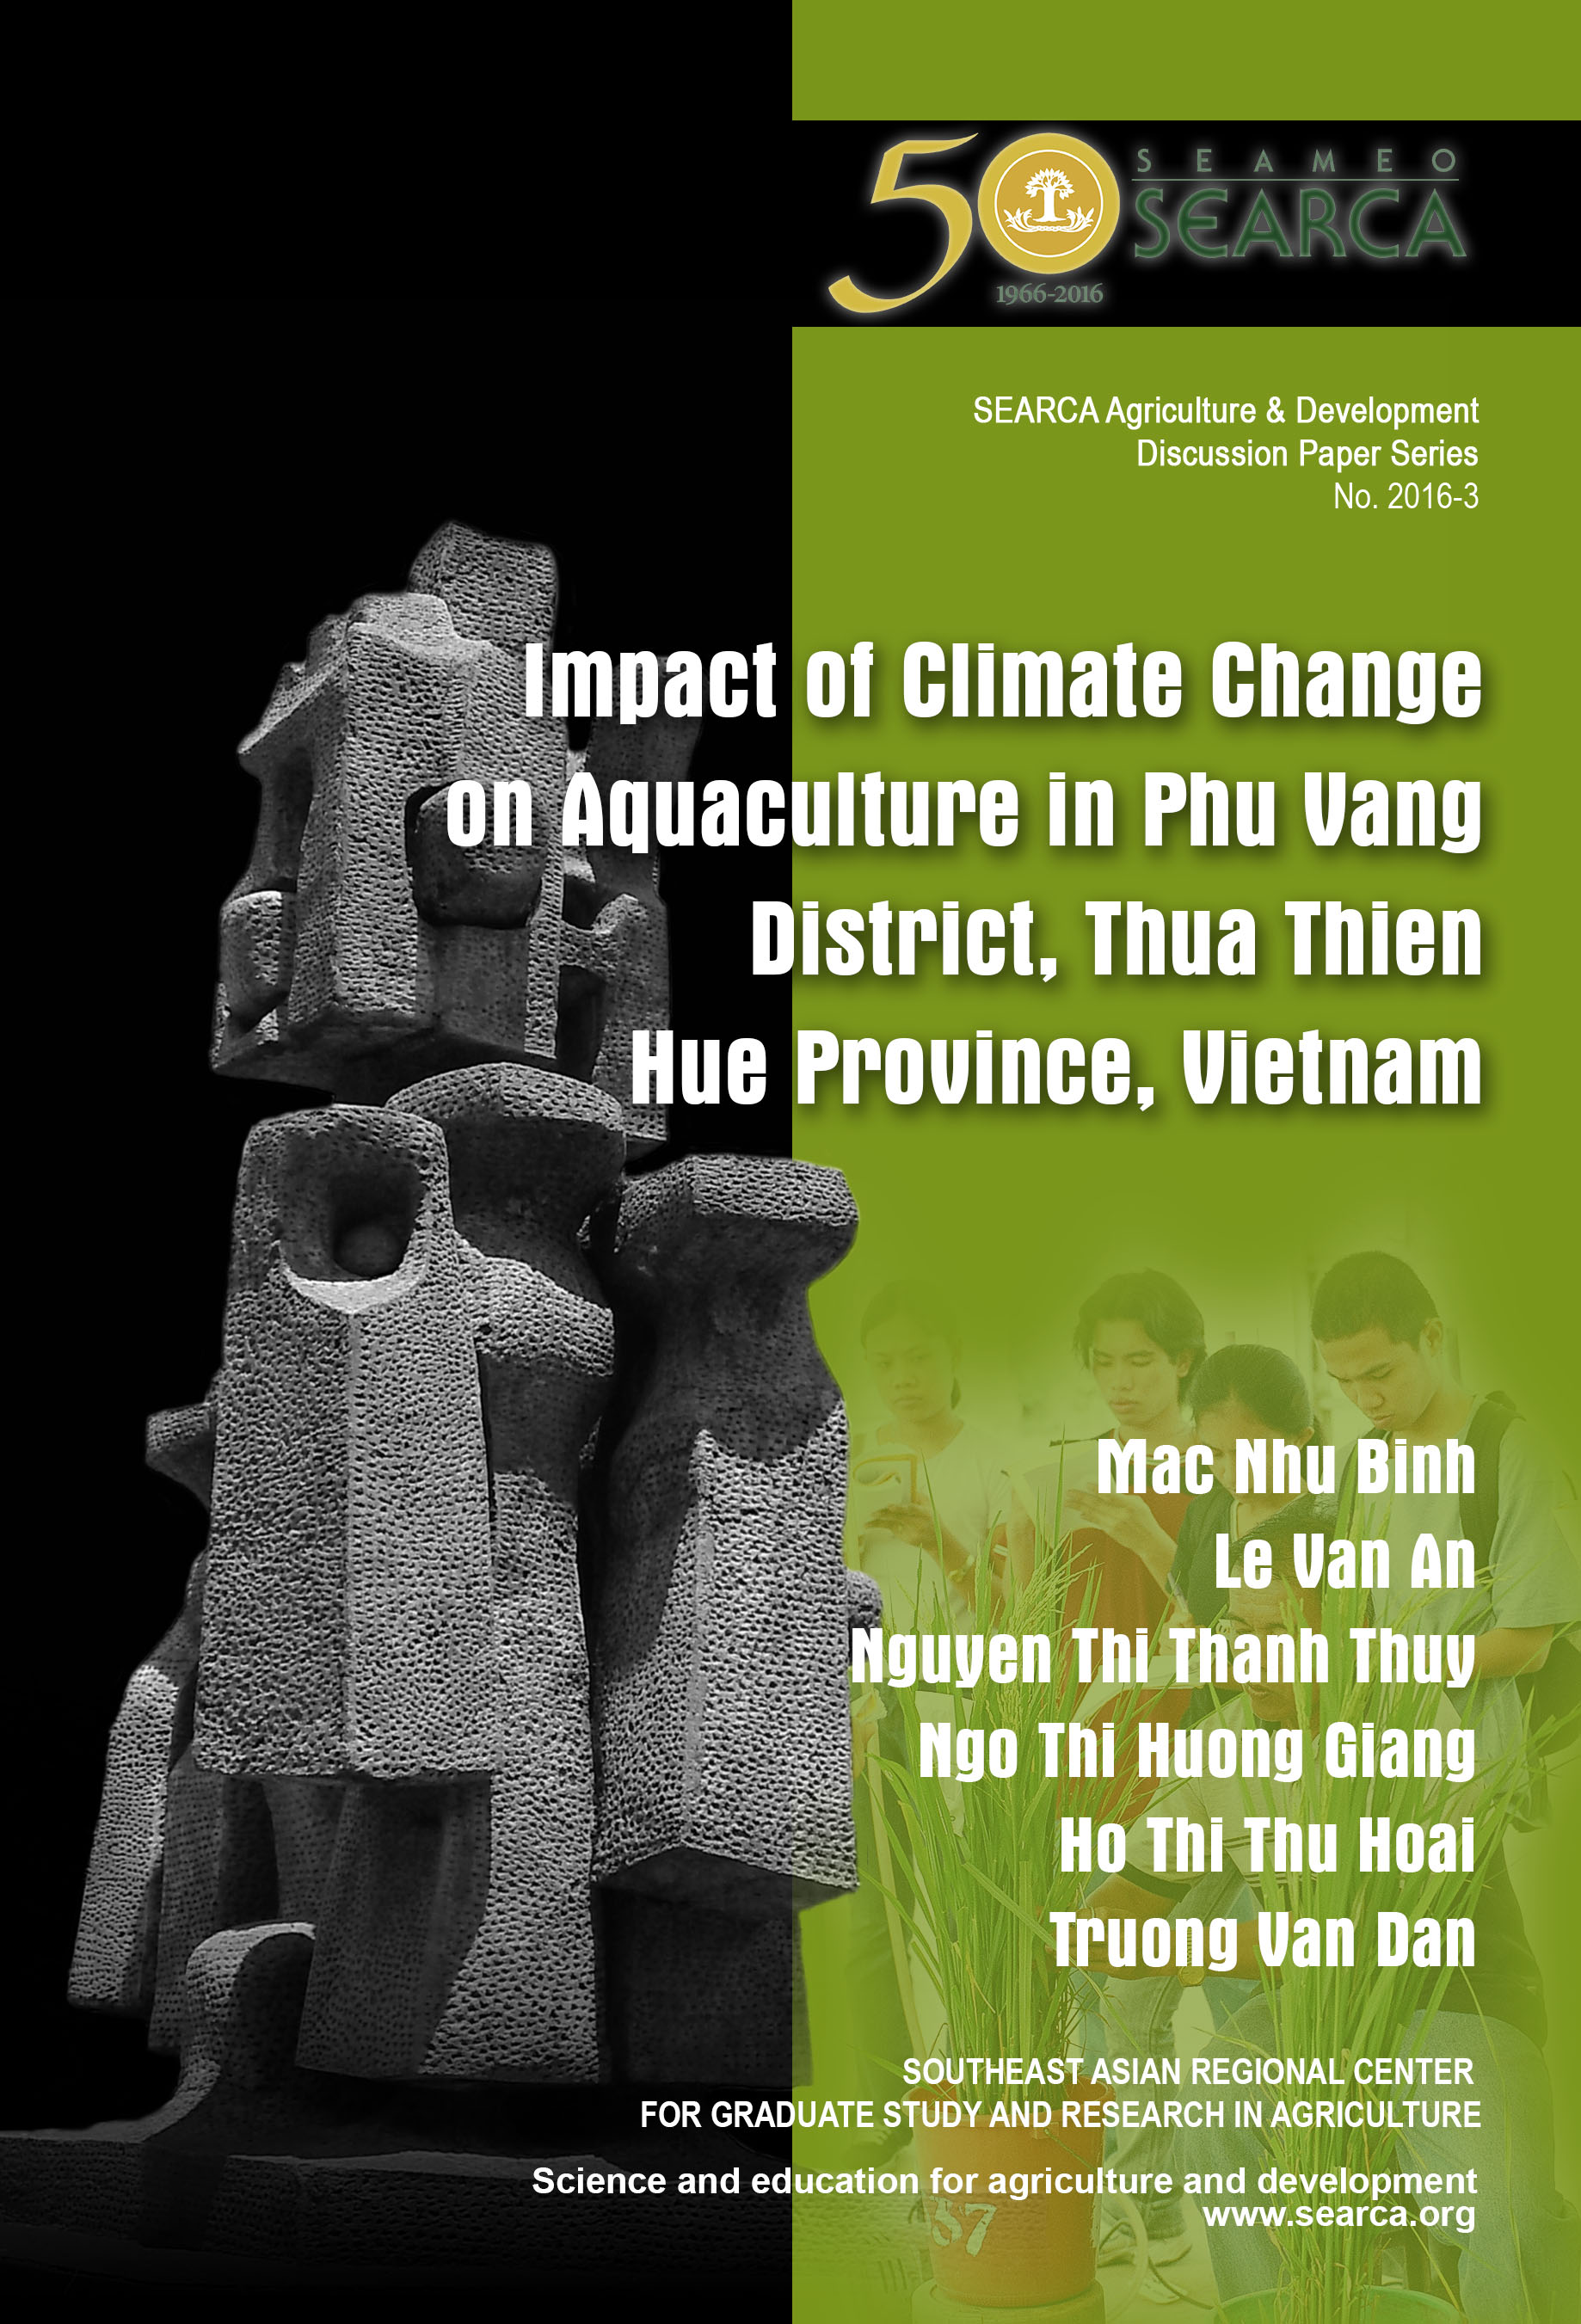 Impact of Climate Change on Aquaculture in Phu Vang District, Thua Thien Hue Province, Vietnam